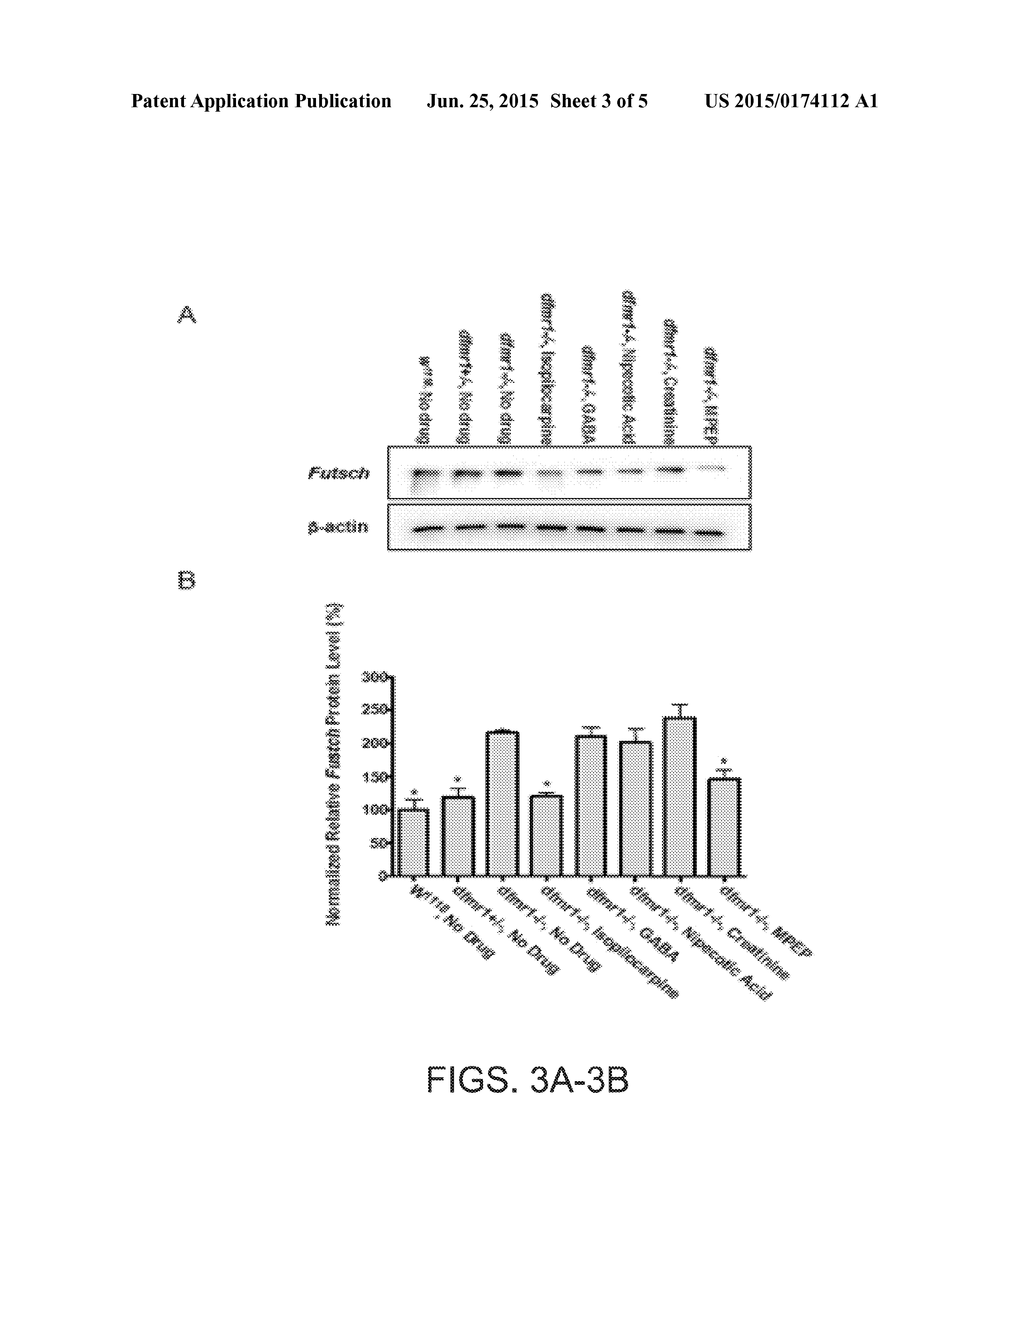 hight resolution of compositions for treating fragile x and other disorders methods of use thereof and screening for compounds for fragile x and other disorders diagram